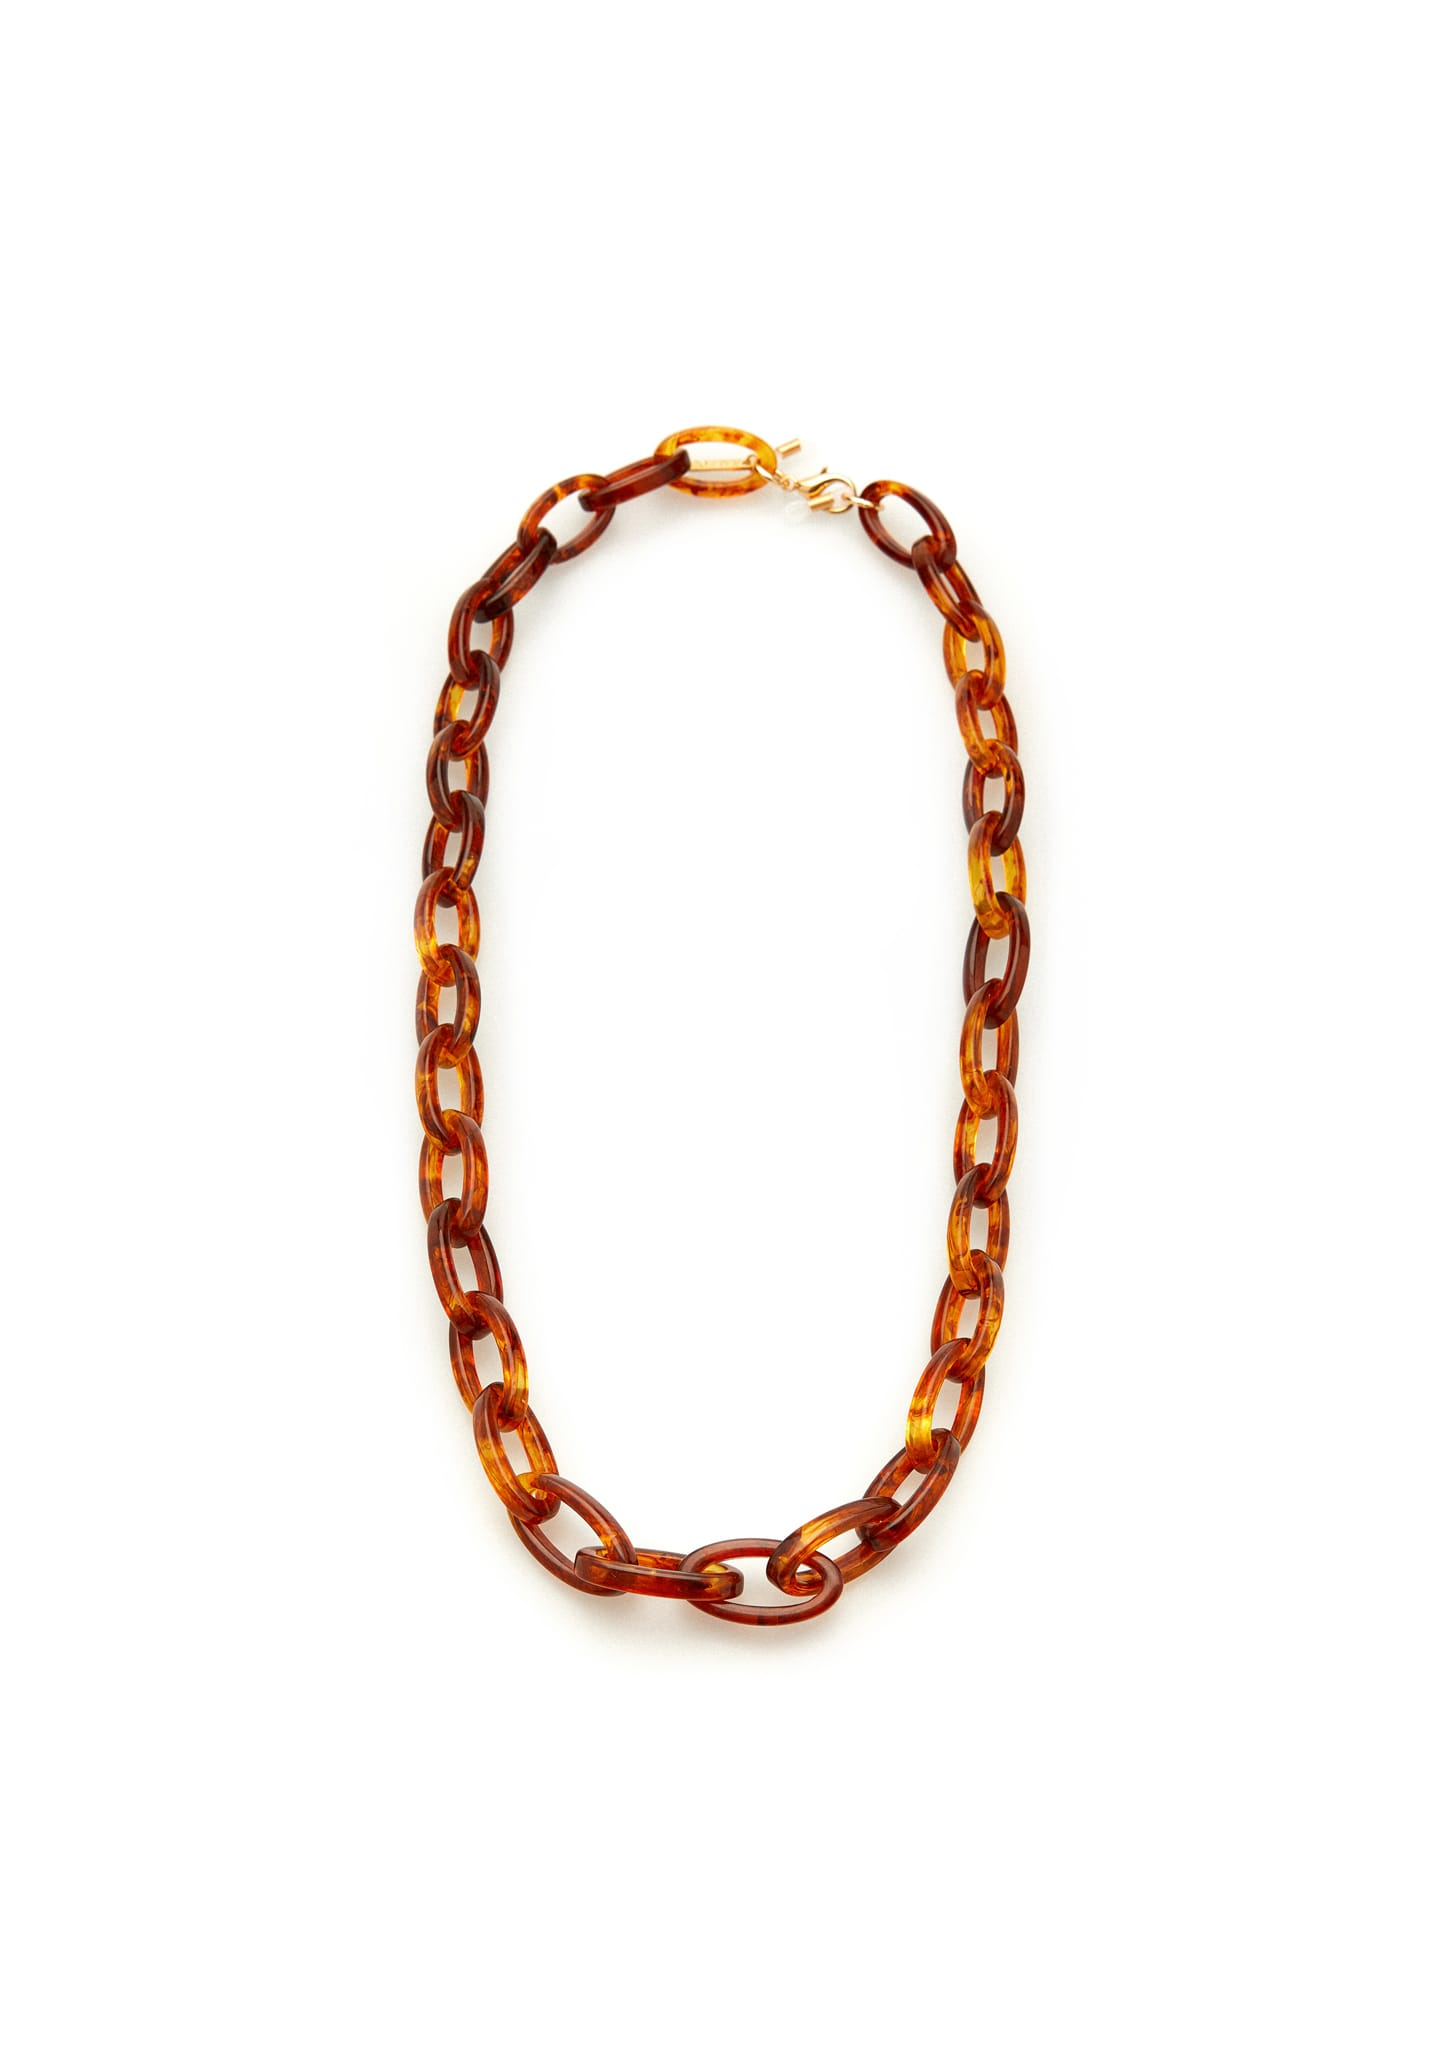 OVAL RESIN CHAIN